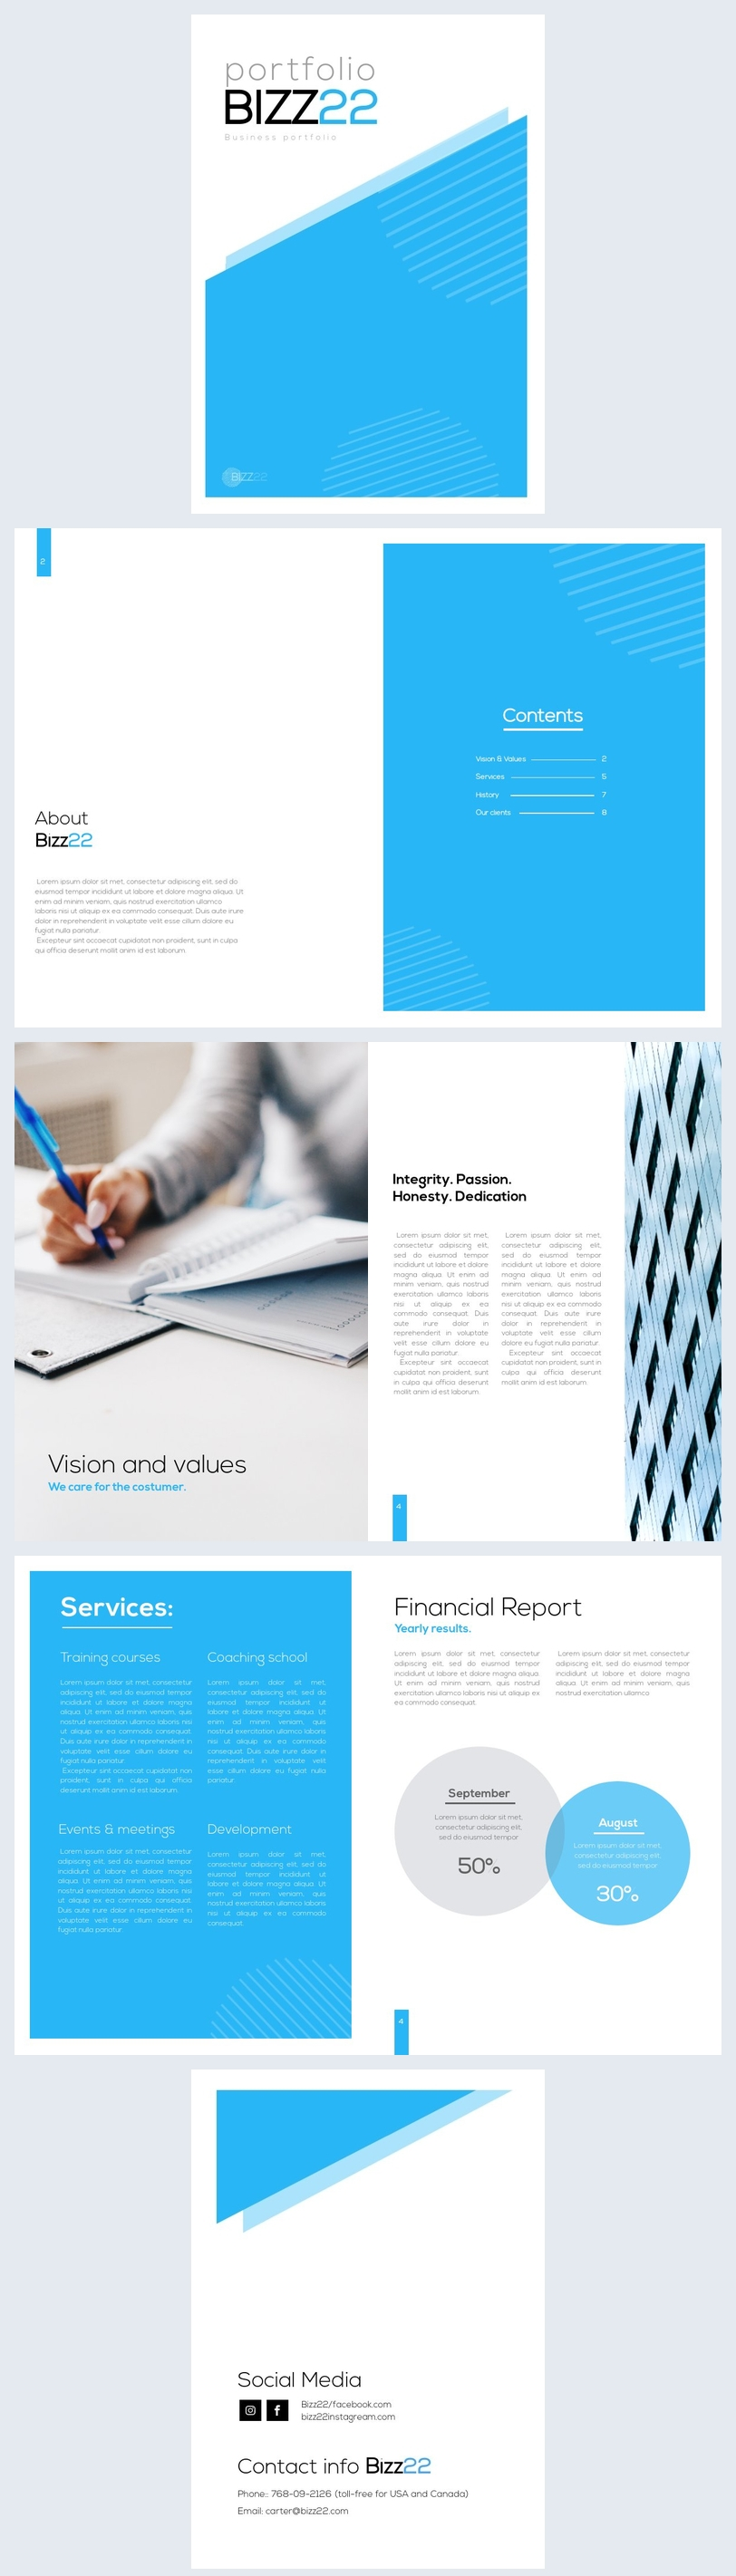 Business portfolio design sample